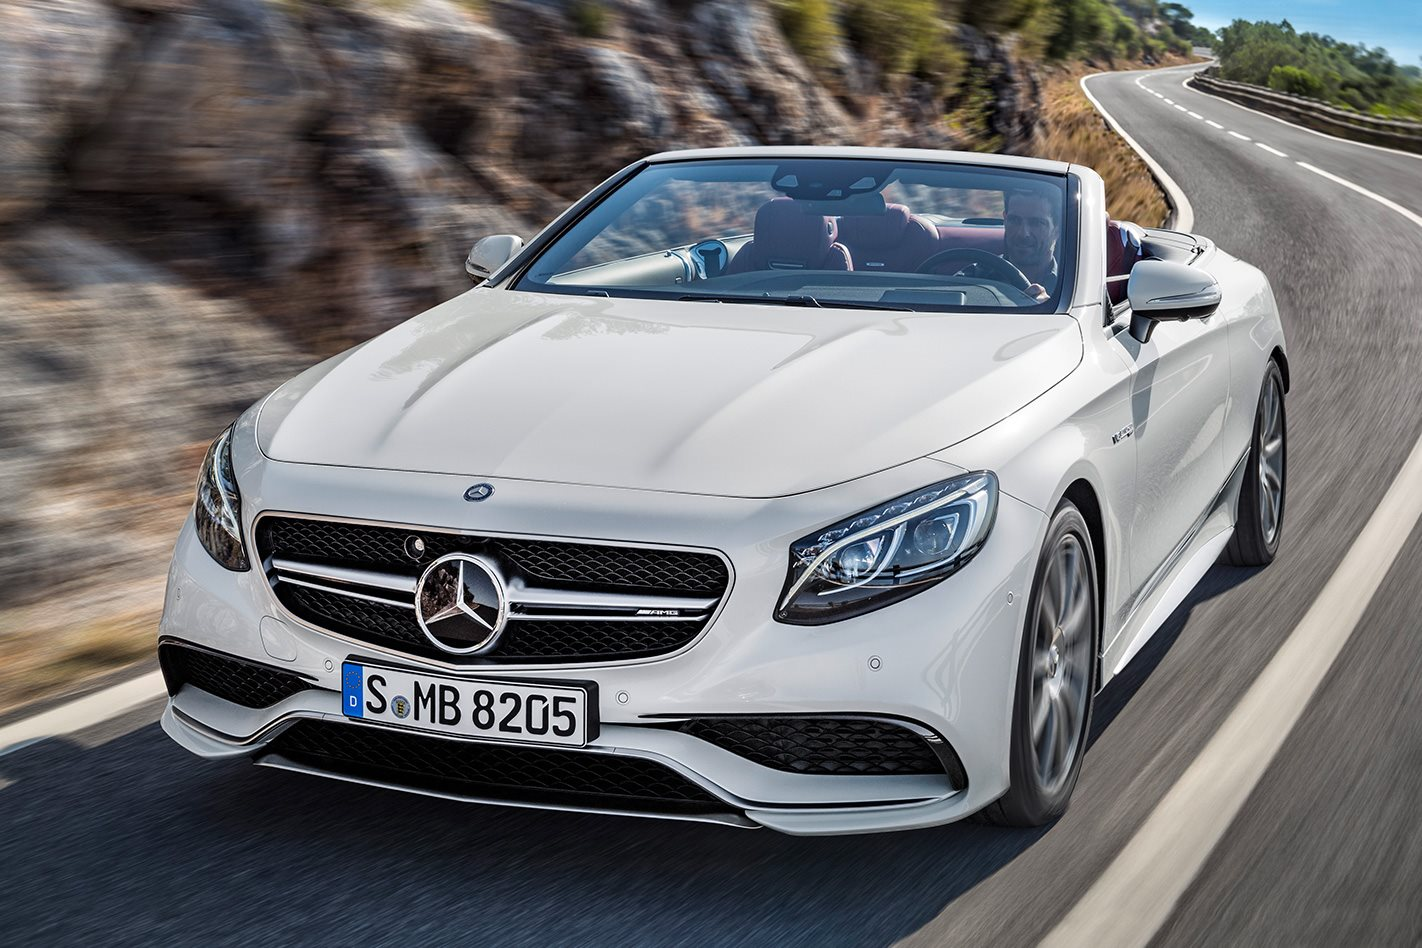 2016 mercedes benz s500 cabriolet review wheels. Black Bedroom Furniture Sets. Home Design Ideas